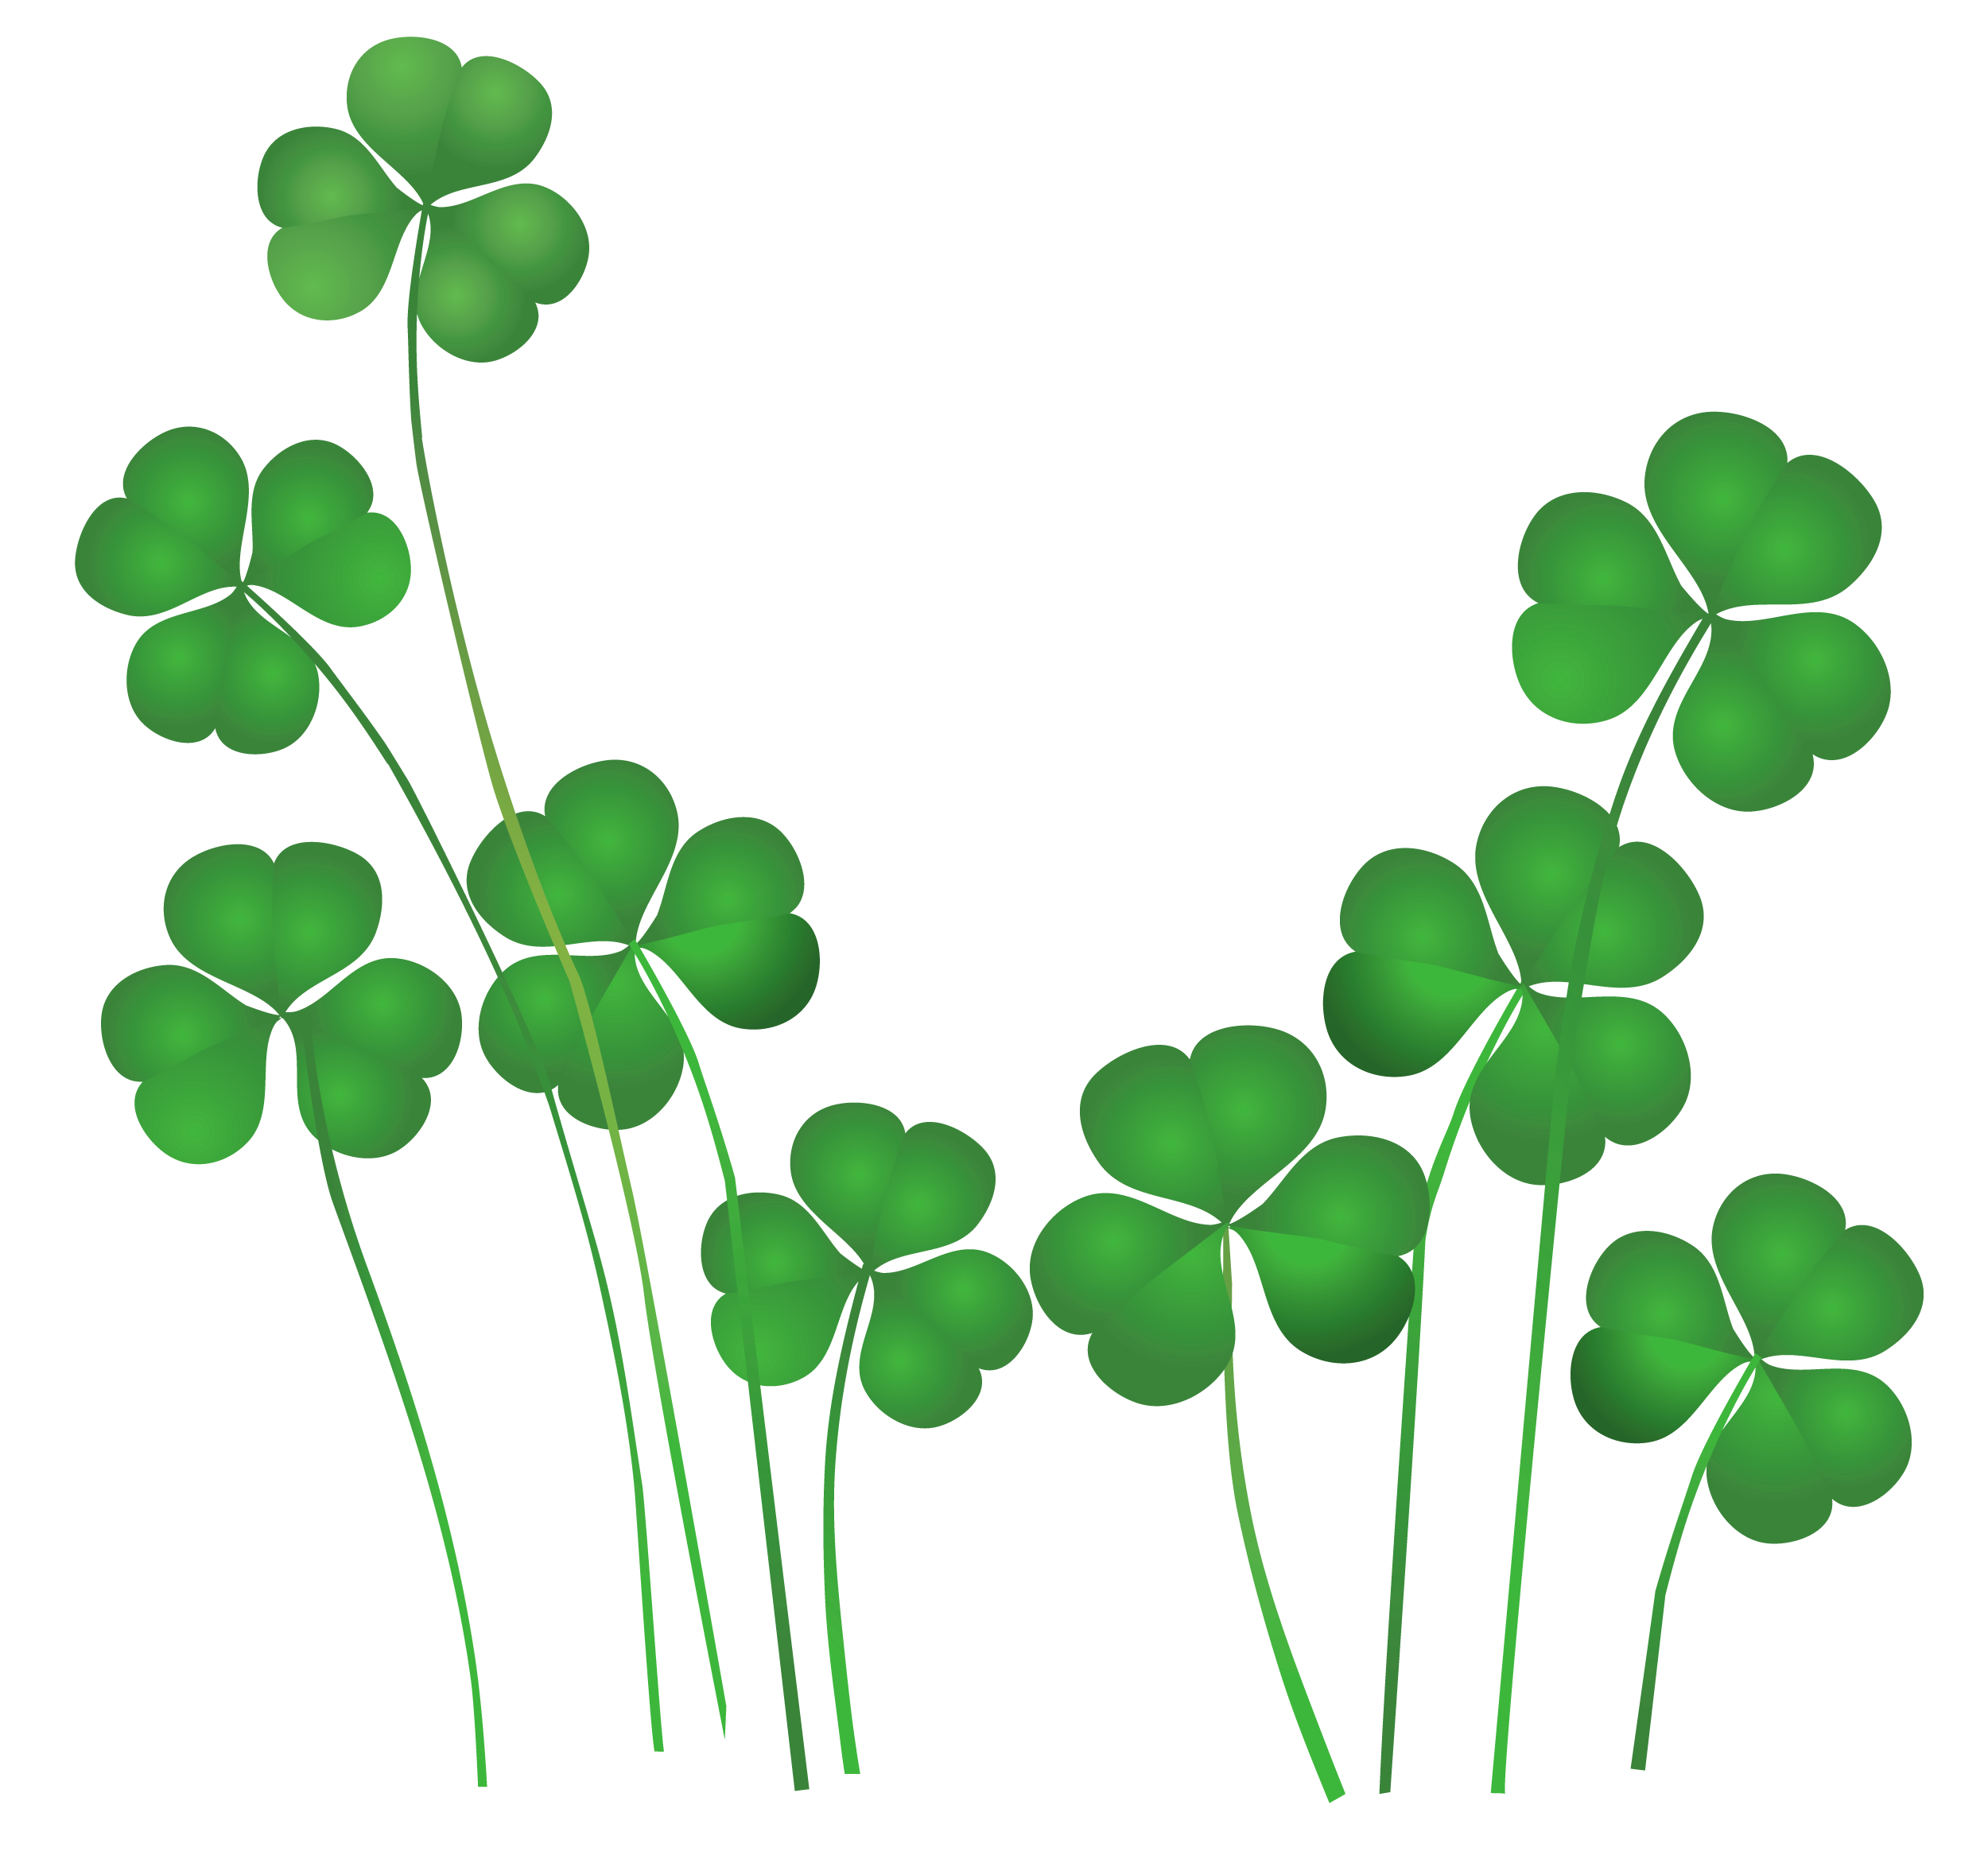 St. Patrick's Day clipart #3, Download drawings